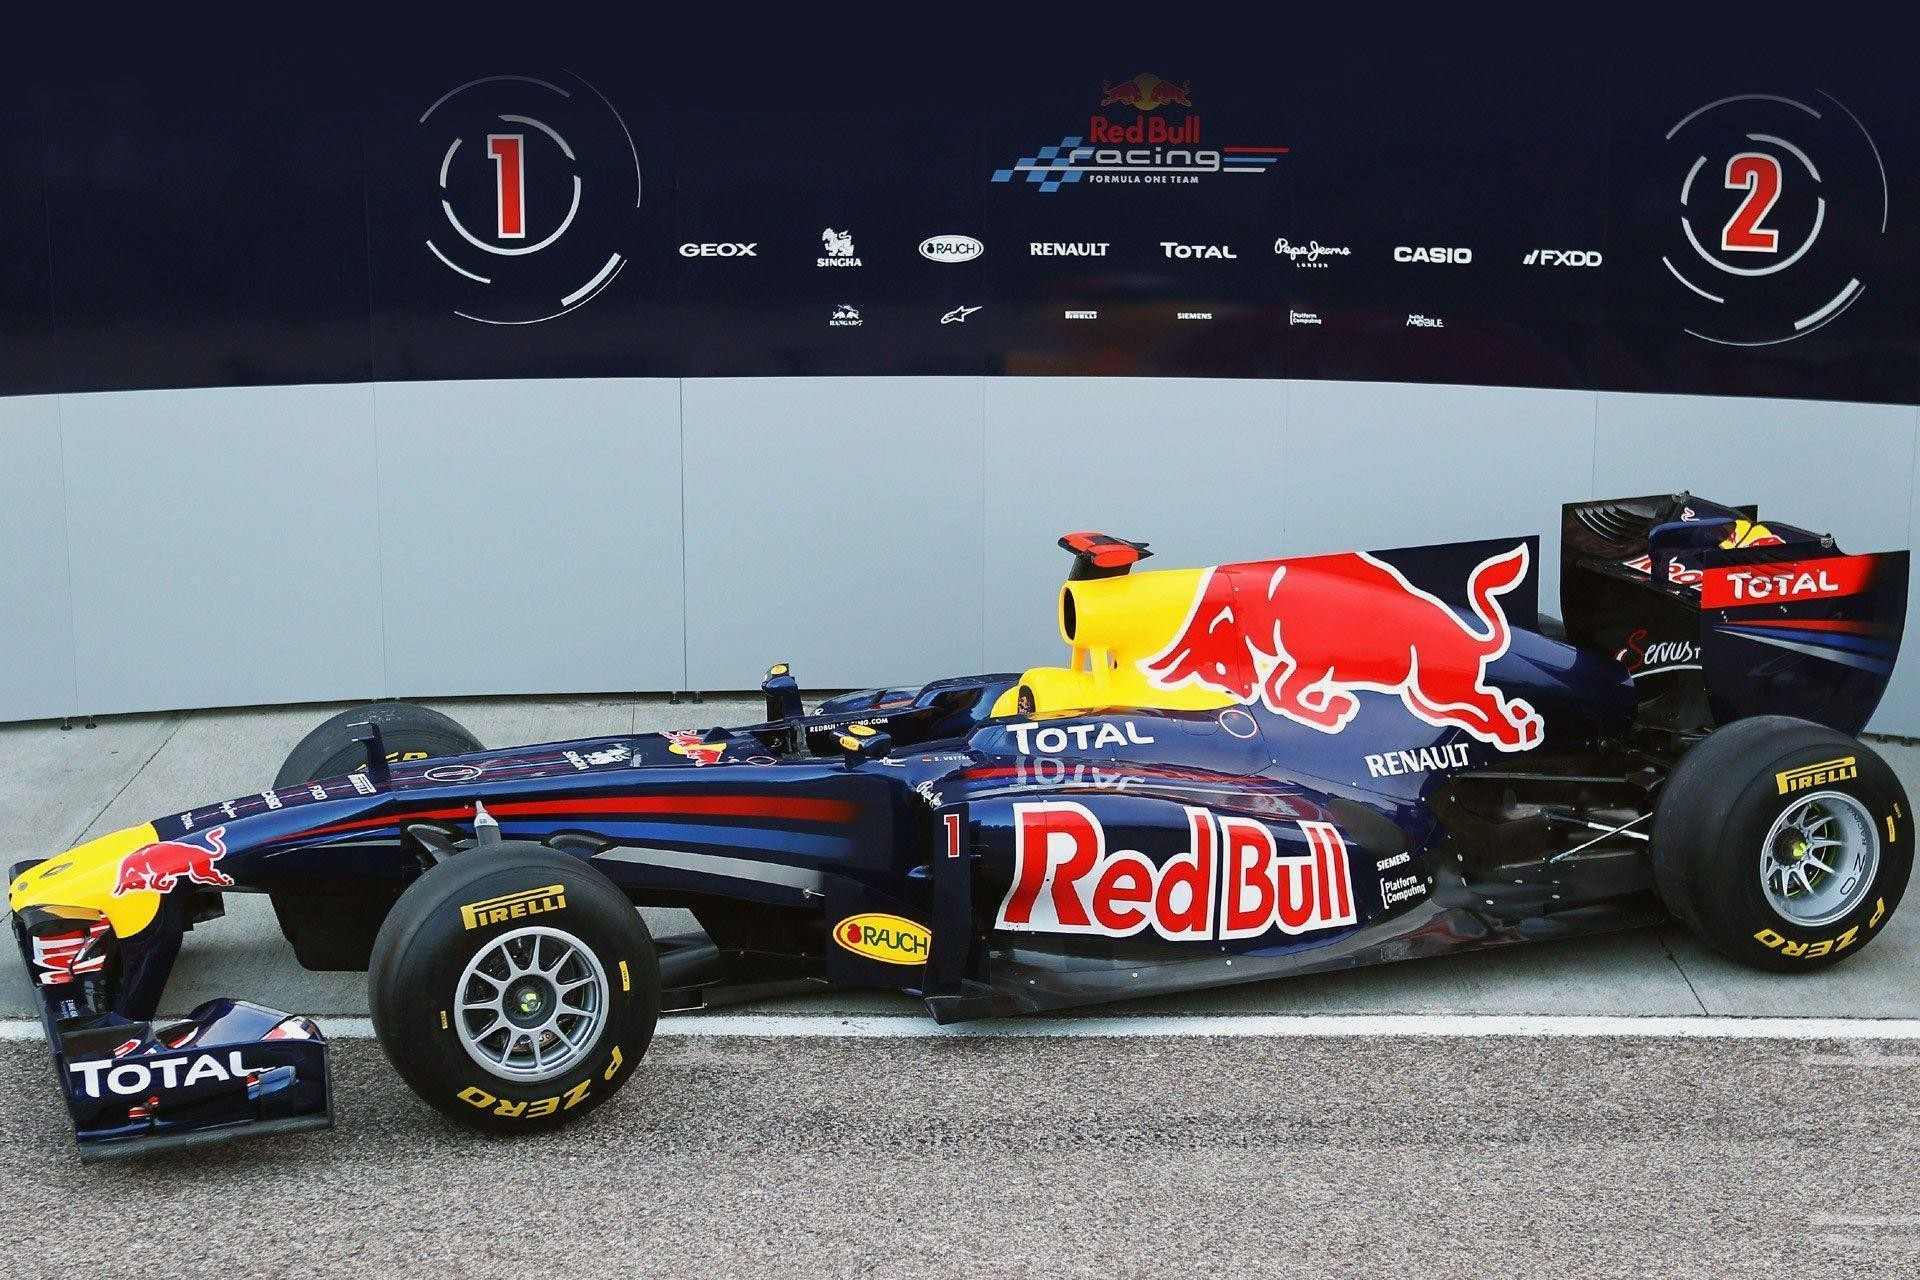 Best Red Bull Racing Iphone Wallpaper Image O